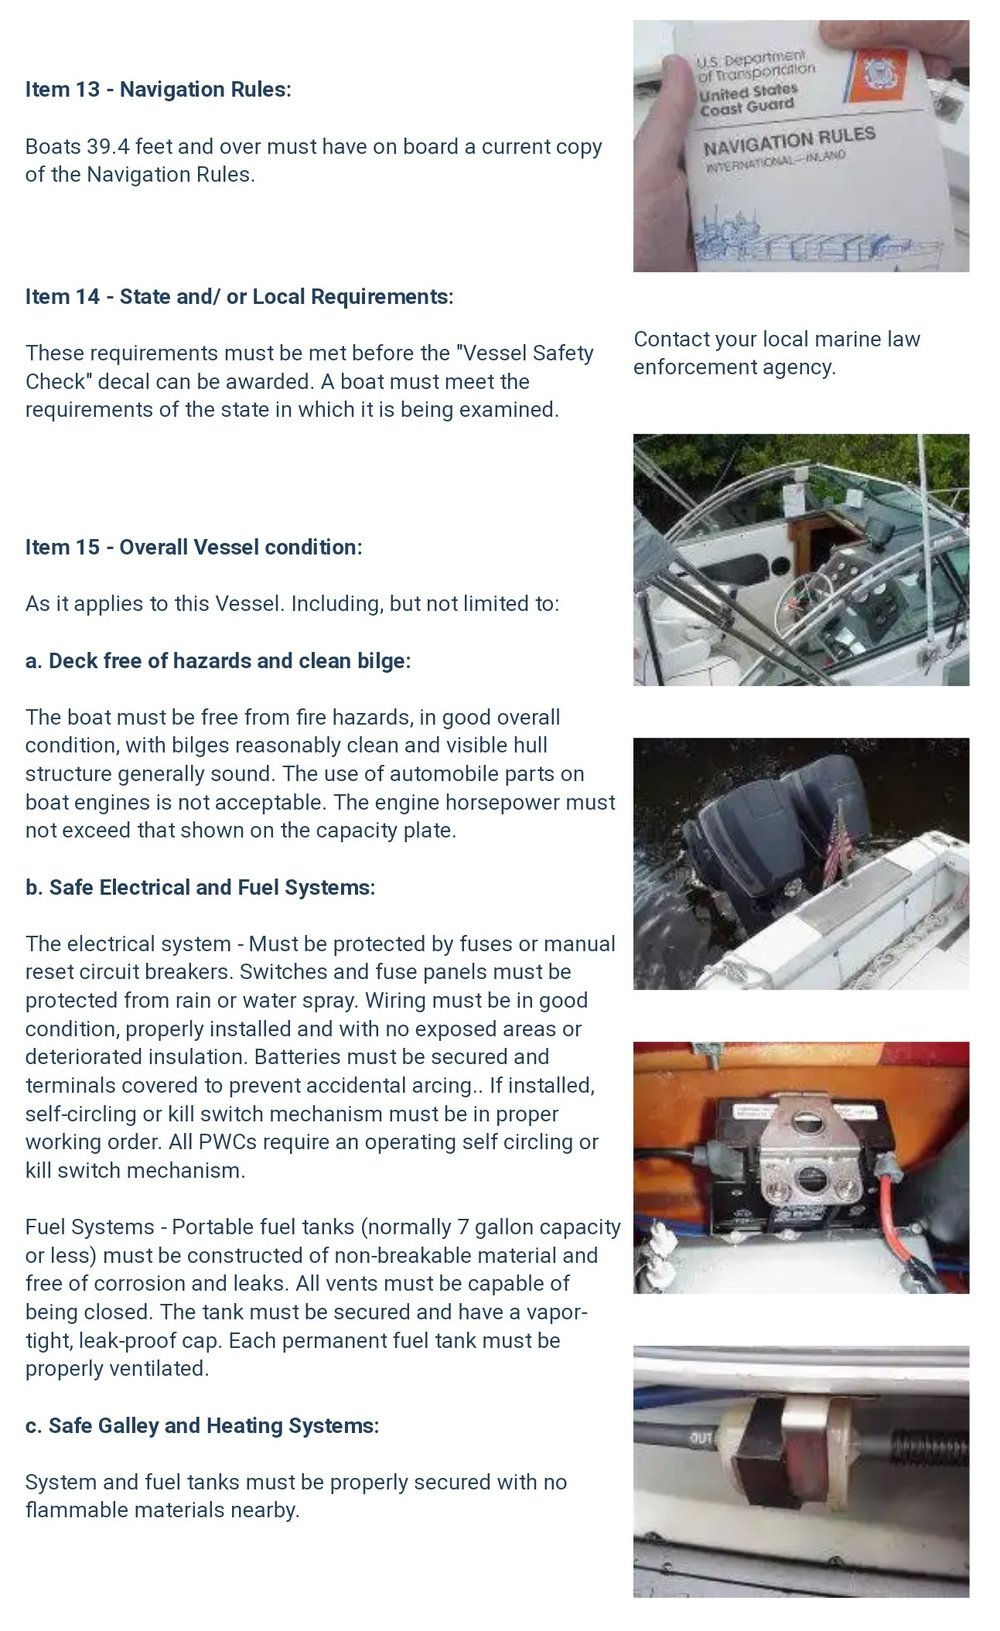 Vessel-Safety-Check-Item13to15-Knoxville-Boating